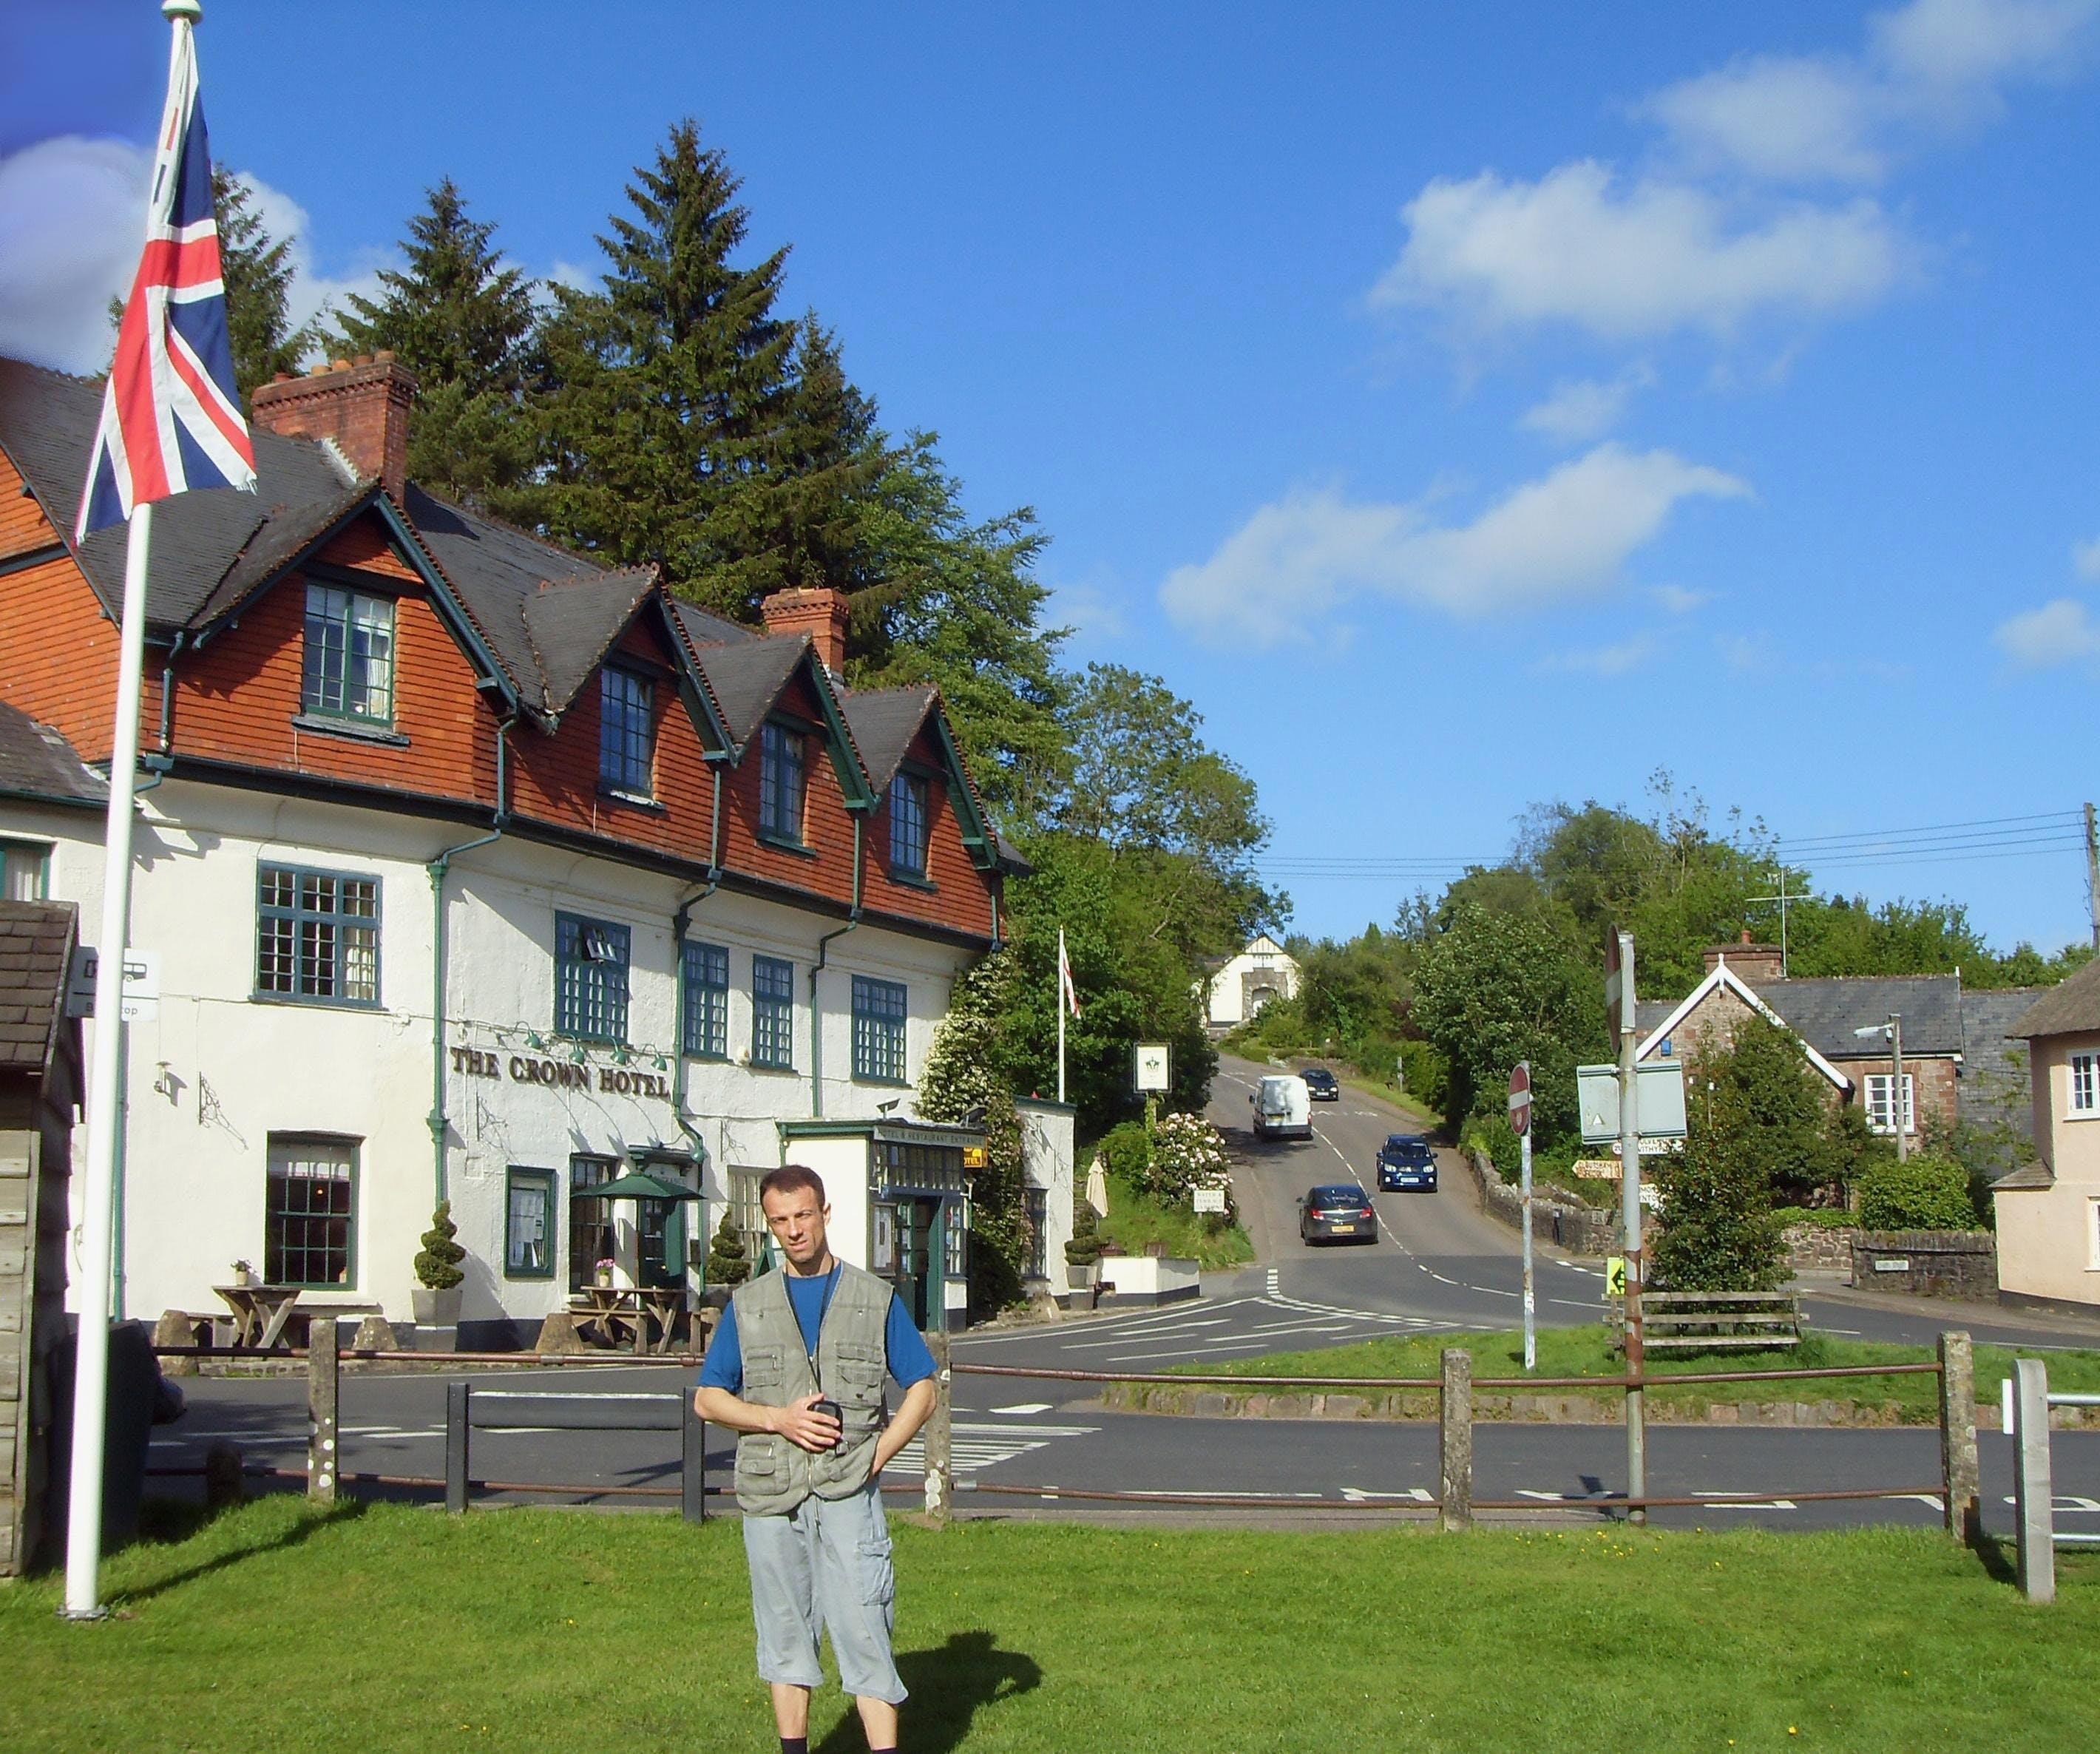 Free stock photo of england, united kingdom, The Crown Hotel Exmoor, Exford